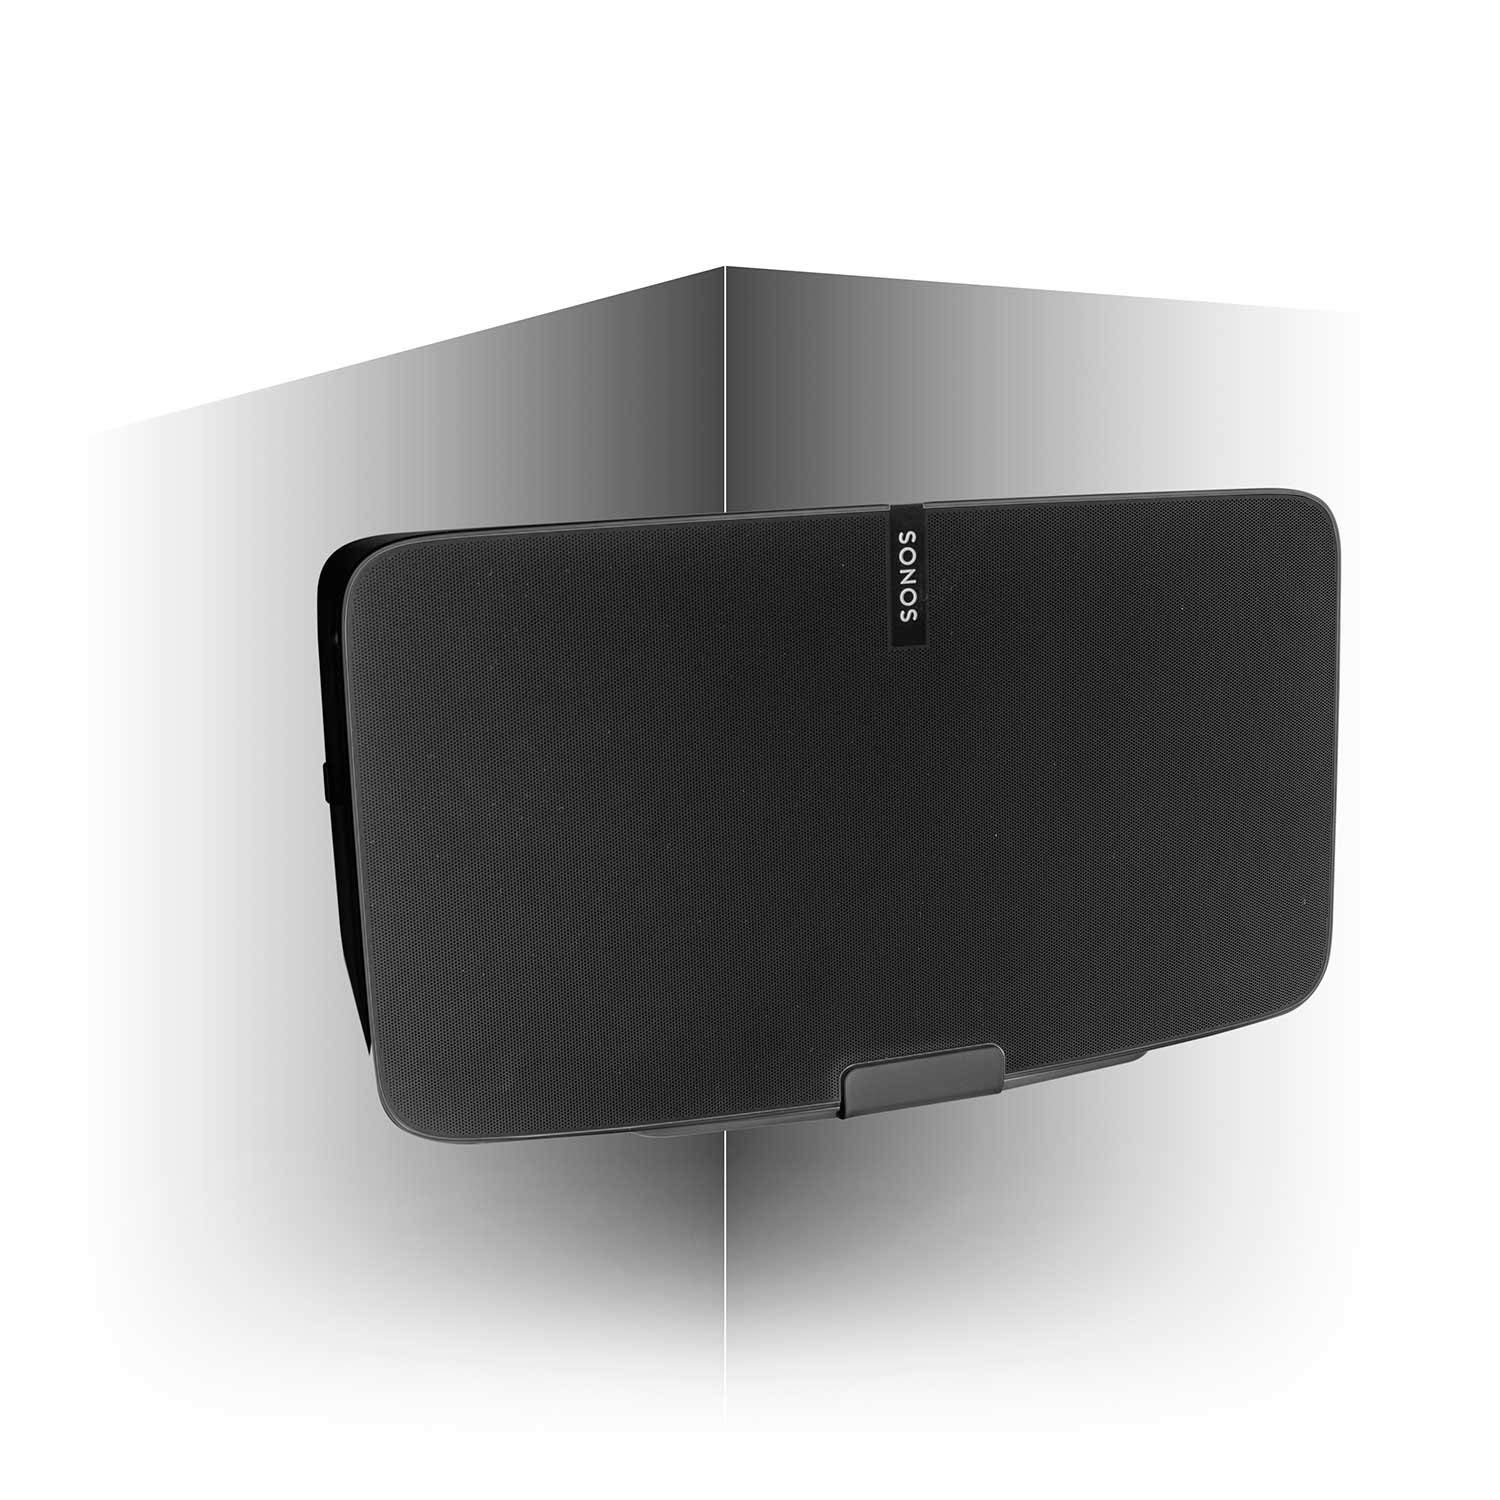 Vebos corner wall mount Sonos Play 5 gen 2 black and optimal sound experience in every room - Compatible with SONOS PLAY:5